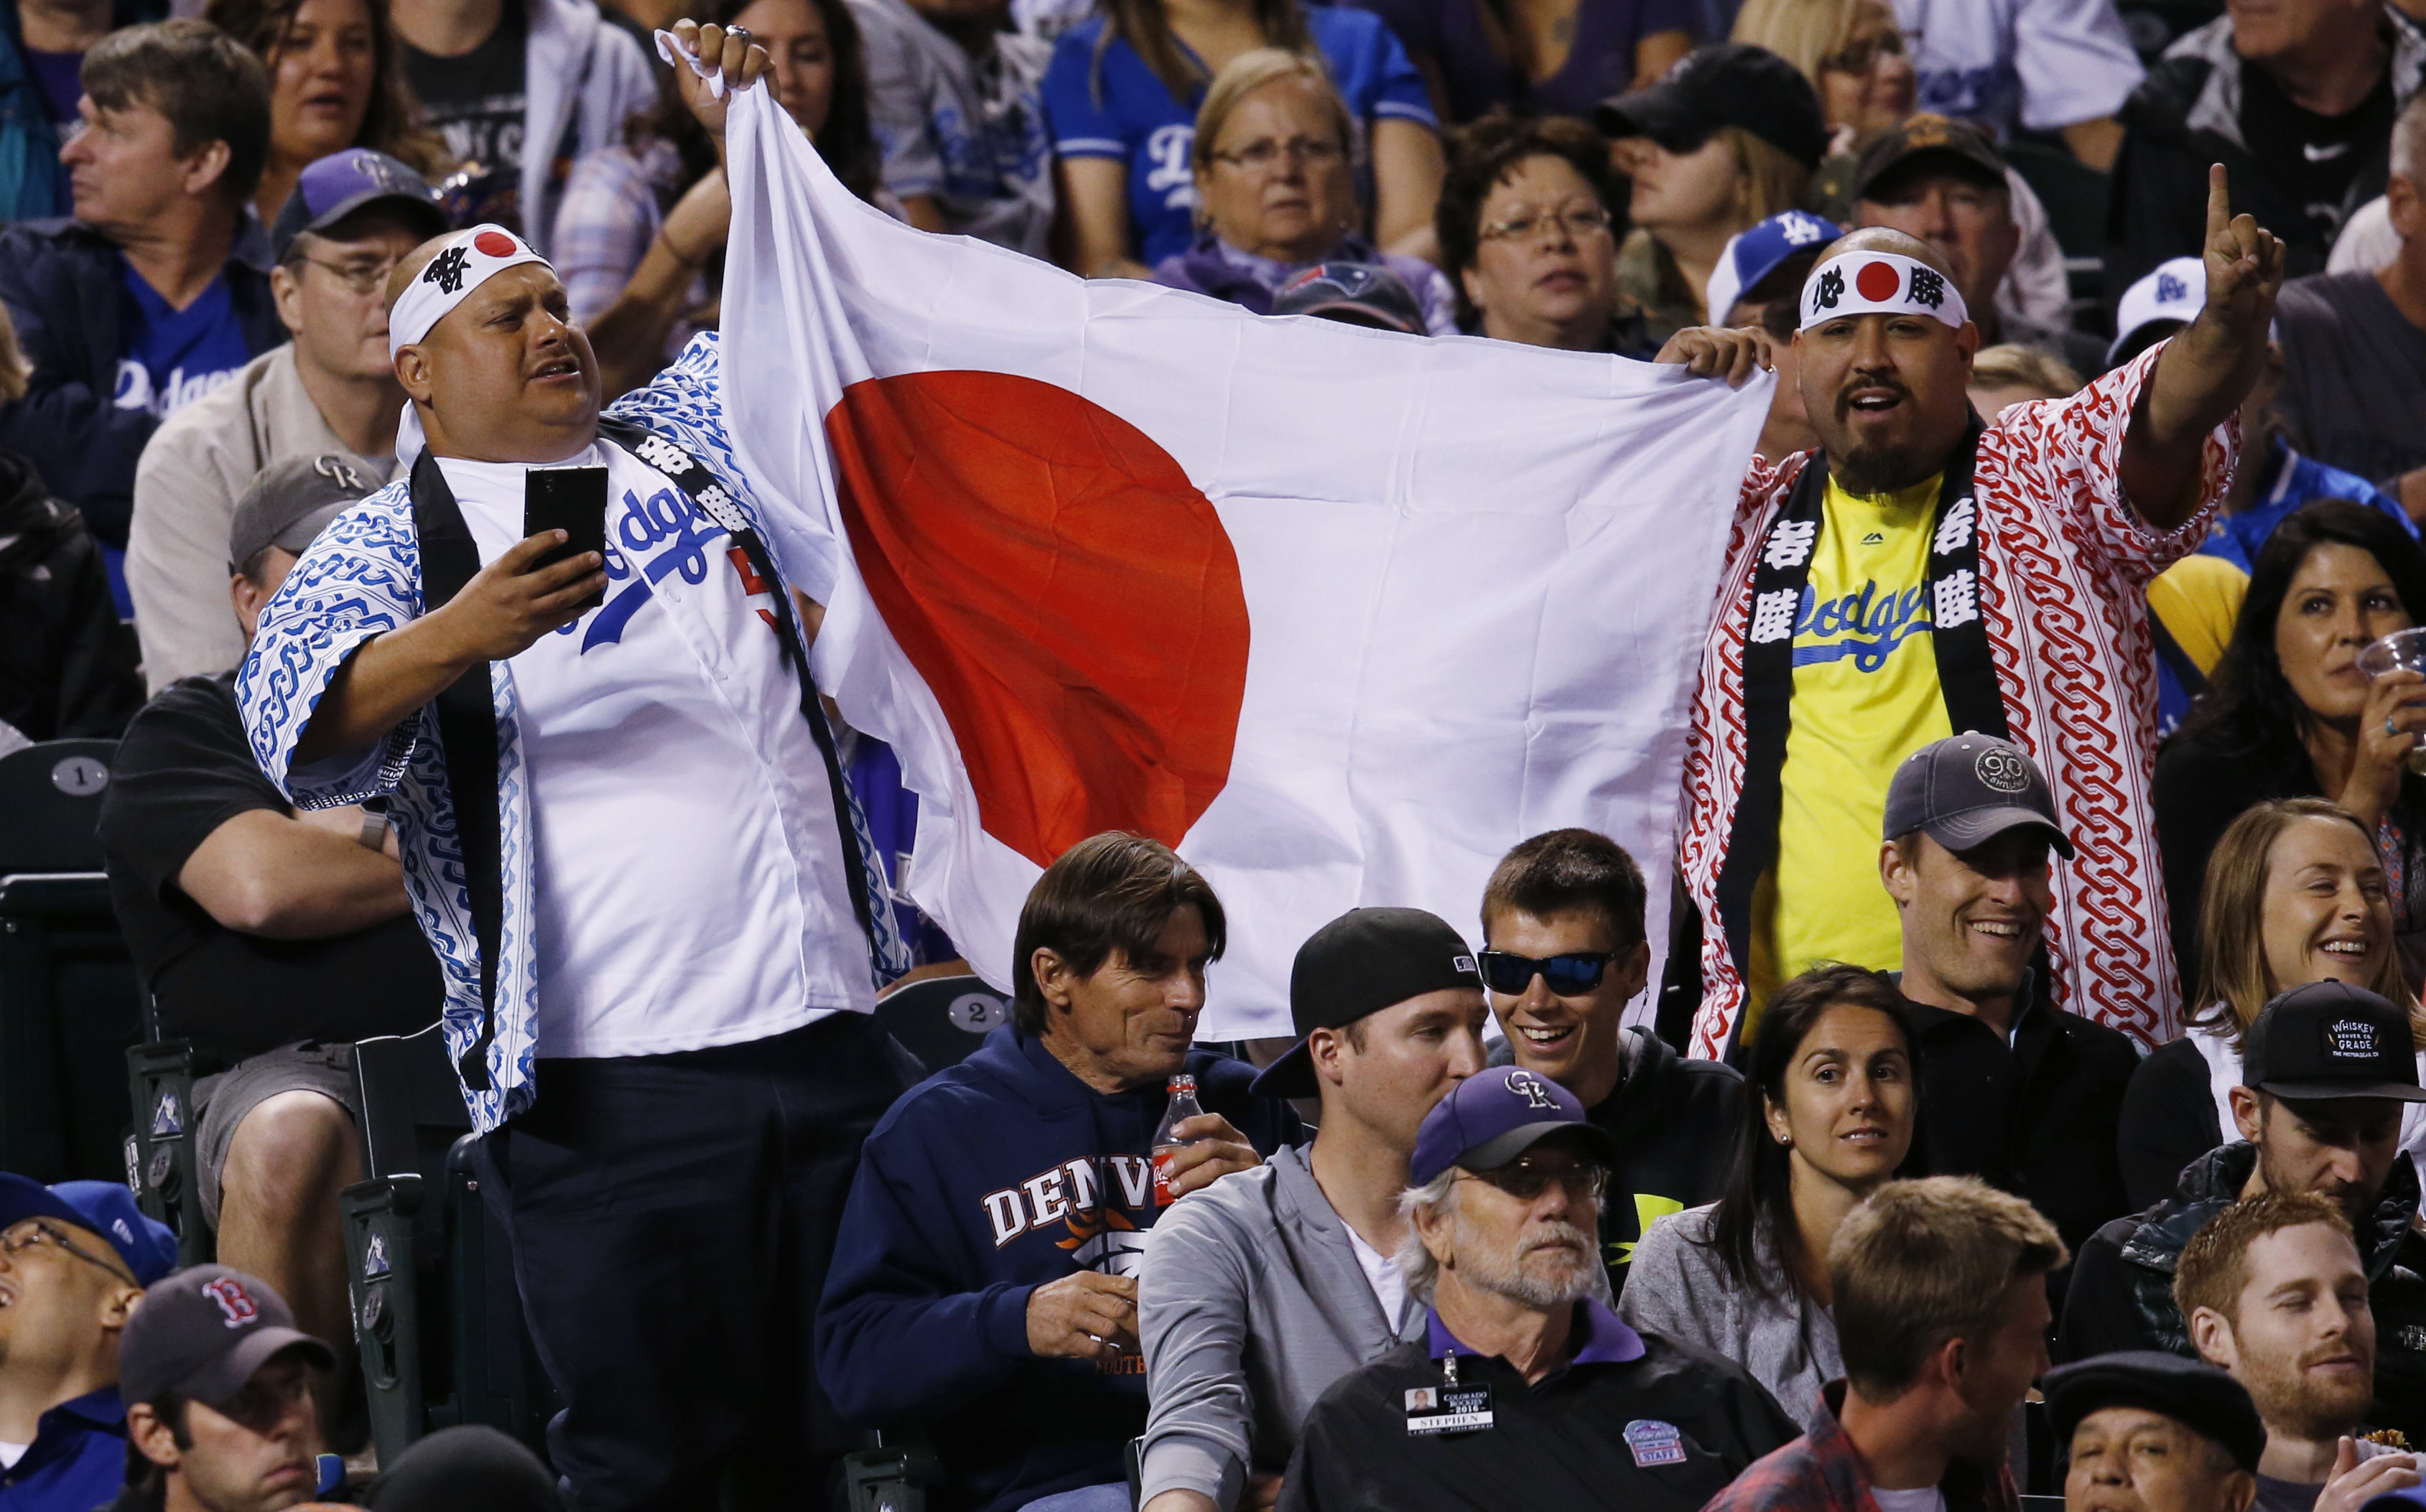 Los Angeles Dodgers fans hold up a Japanese flag after Dodgers starting pitcher Kenta Maeda, of Japan, retired Colorado Rockies' Nolan Arenado to end the sixth inning of a baseball game Saturday, April 23, 2016, in Denver. The Dodgers won 4-1. (AP Photo/D